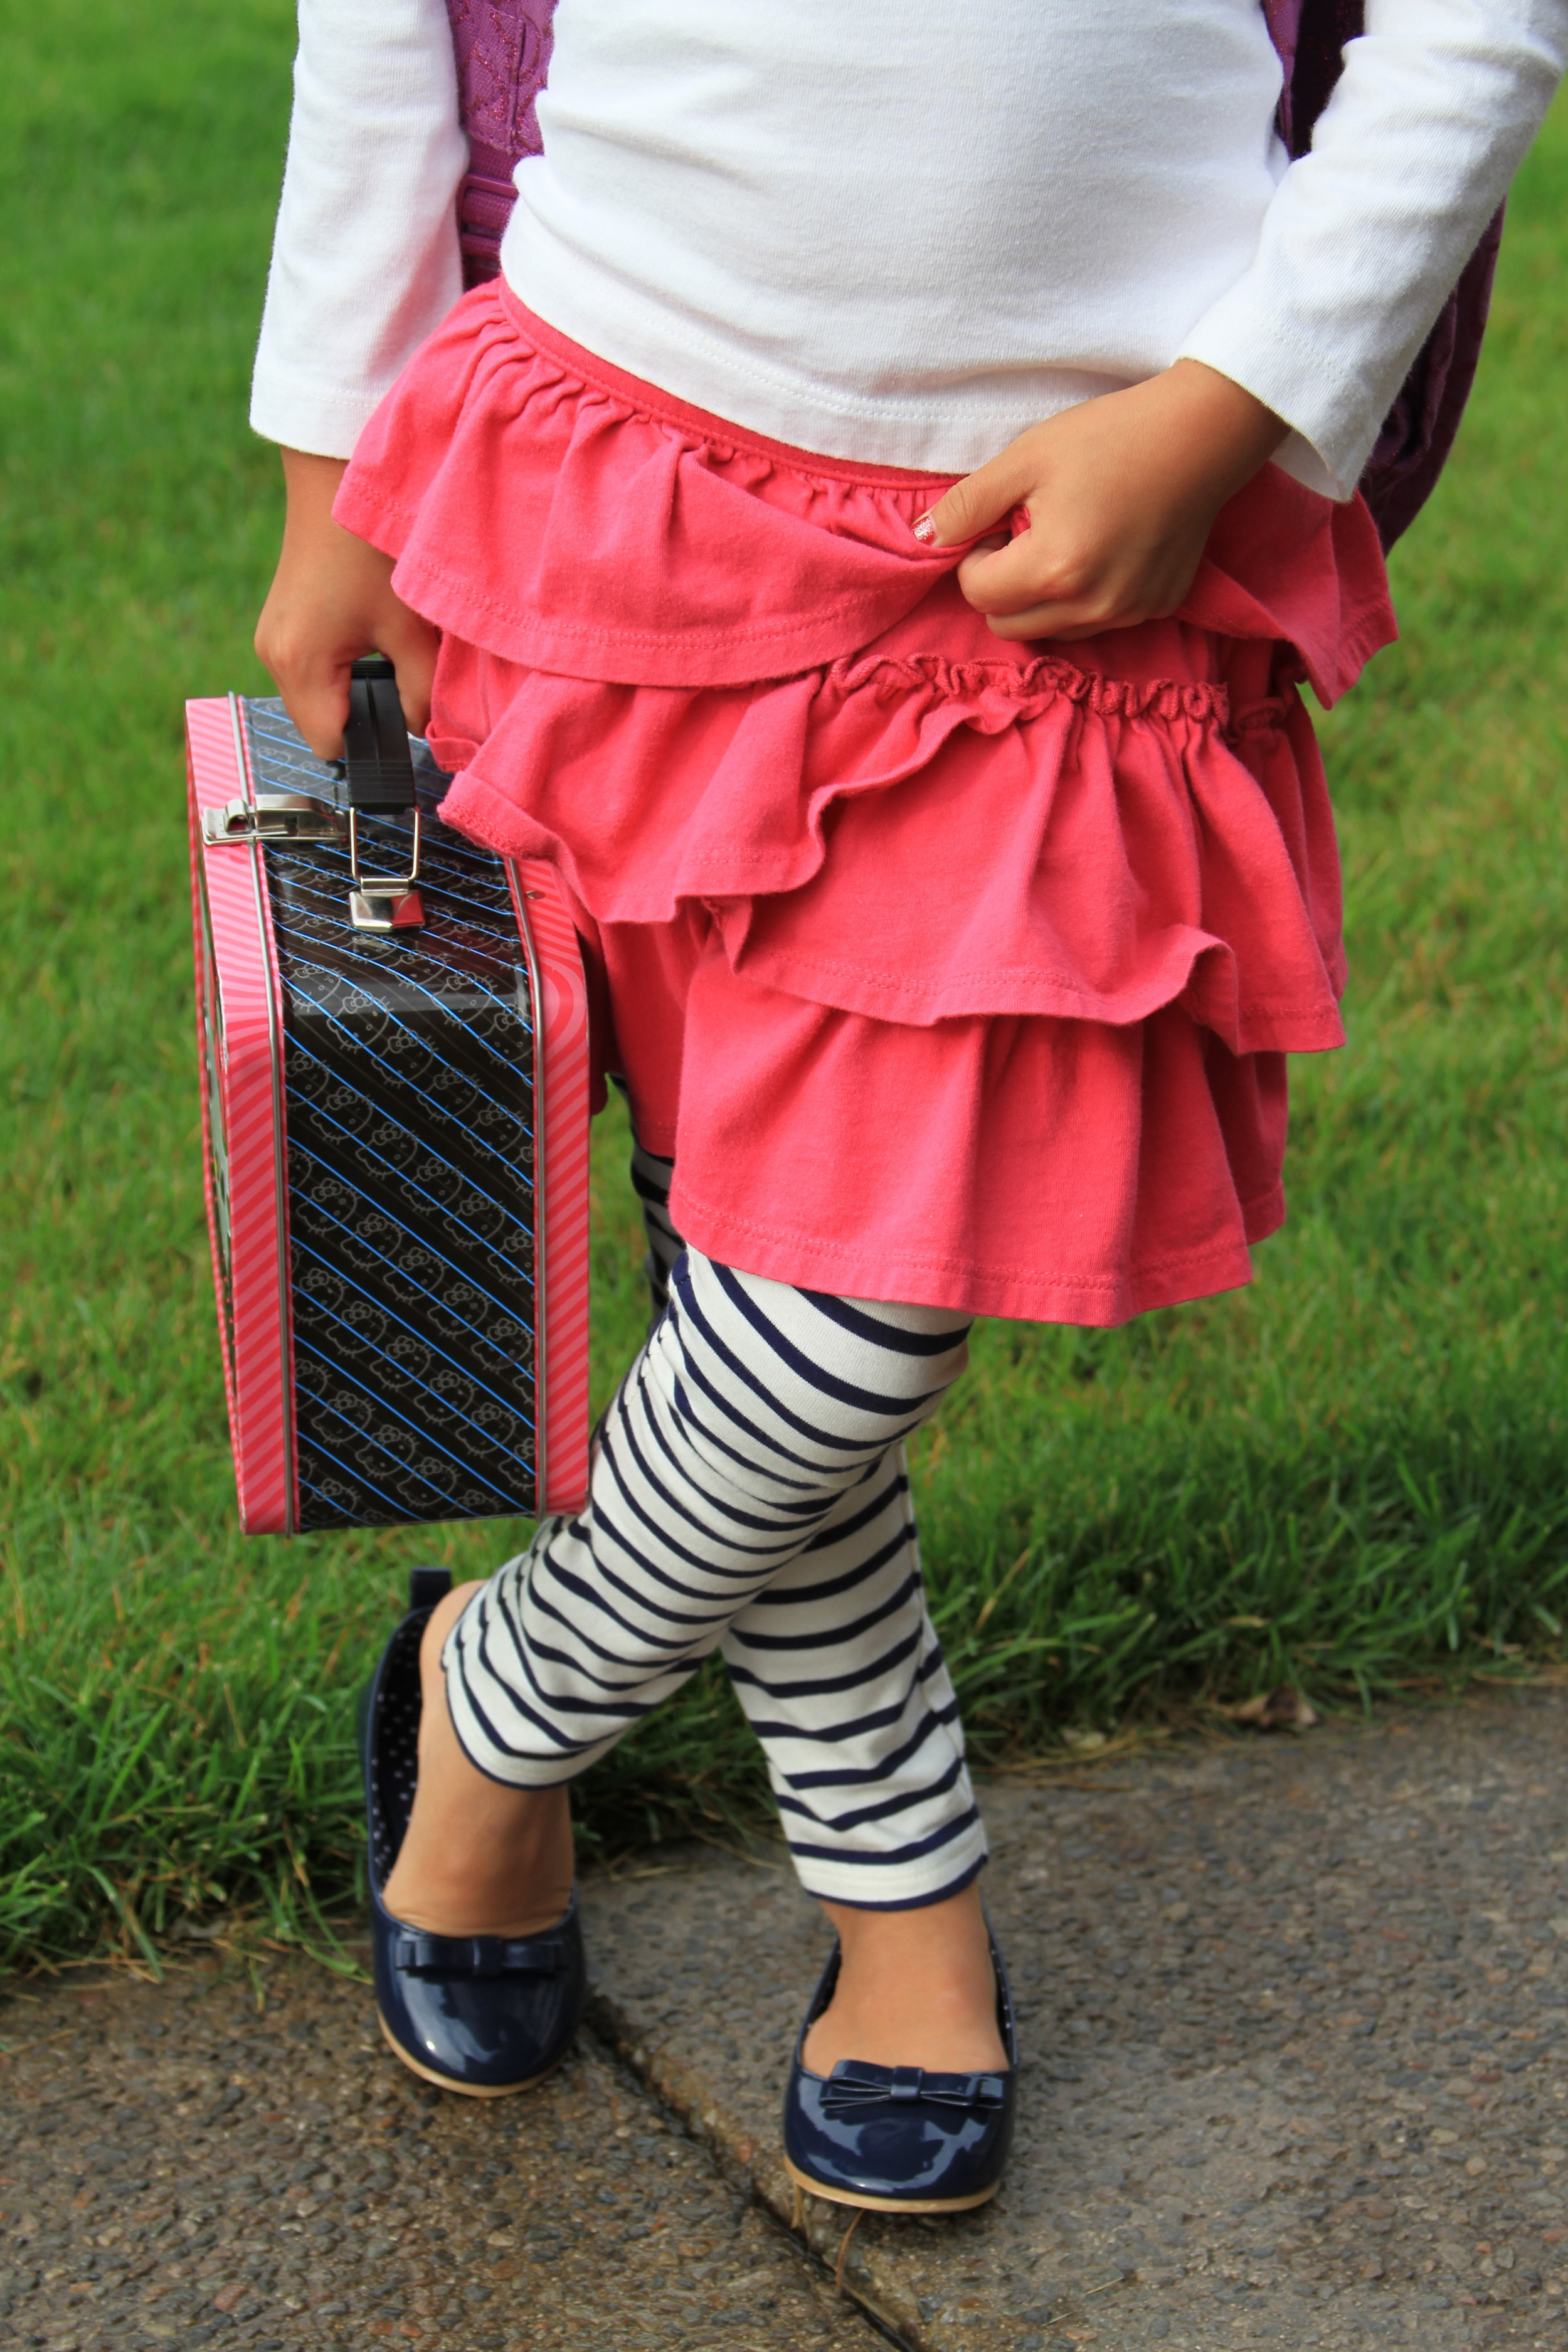 Photo Tip: You don't always need the whole kid; especially when you want to focus on other details, like new clothes, shoes and that adorable stance!